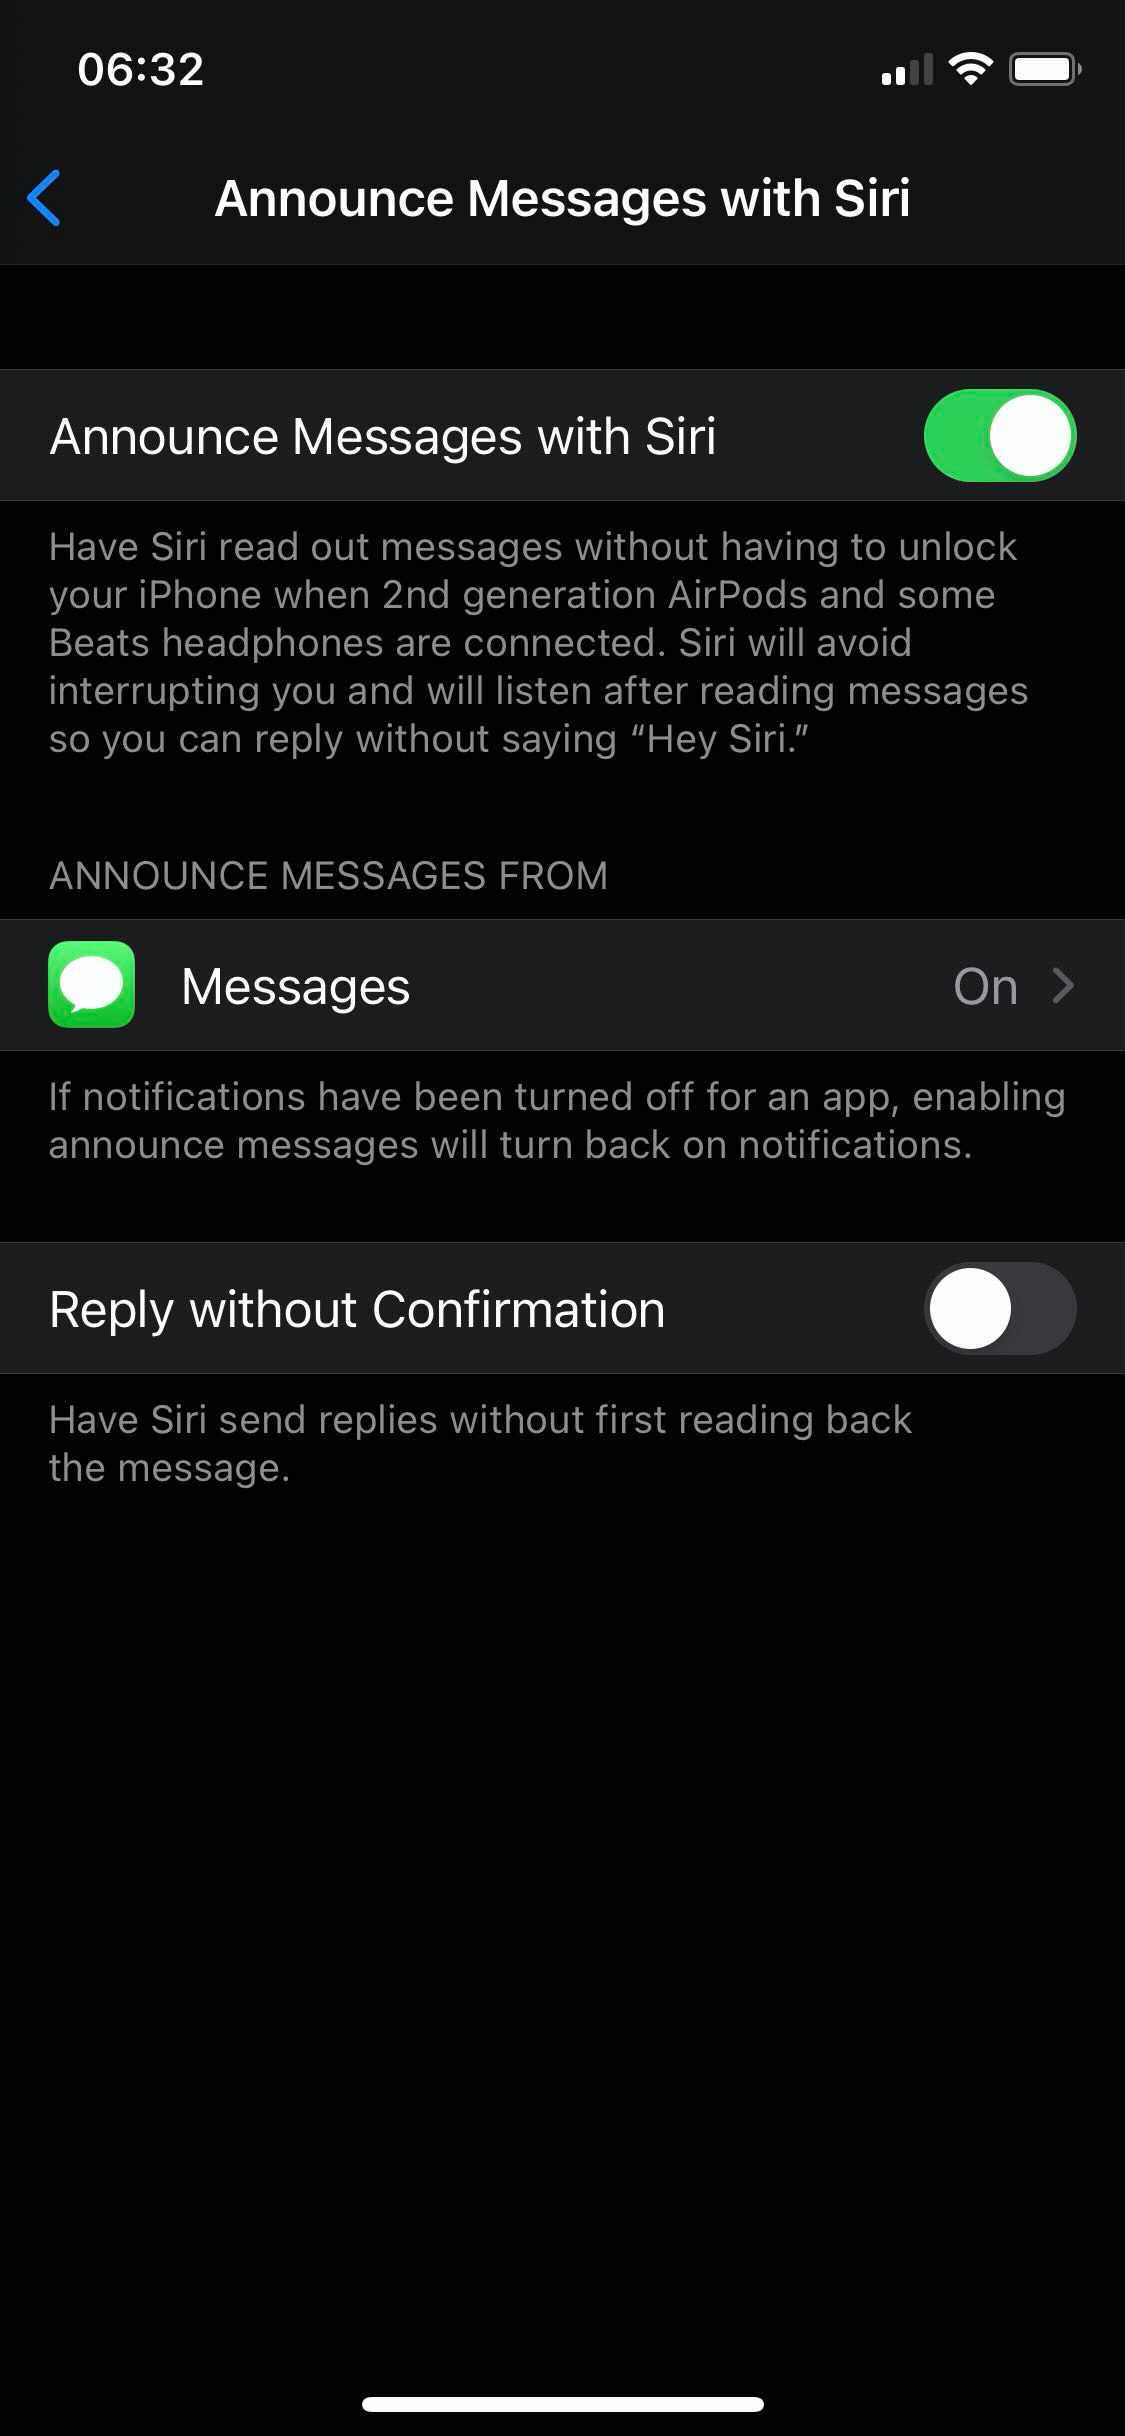 Announce Messages with Siri Enabled on iPhone